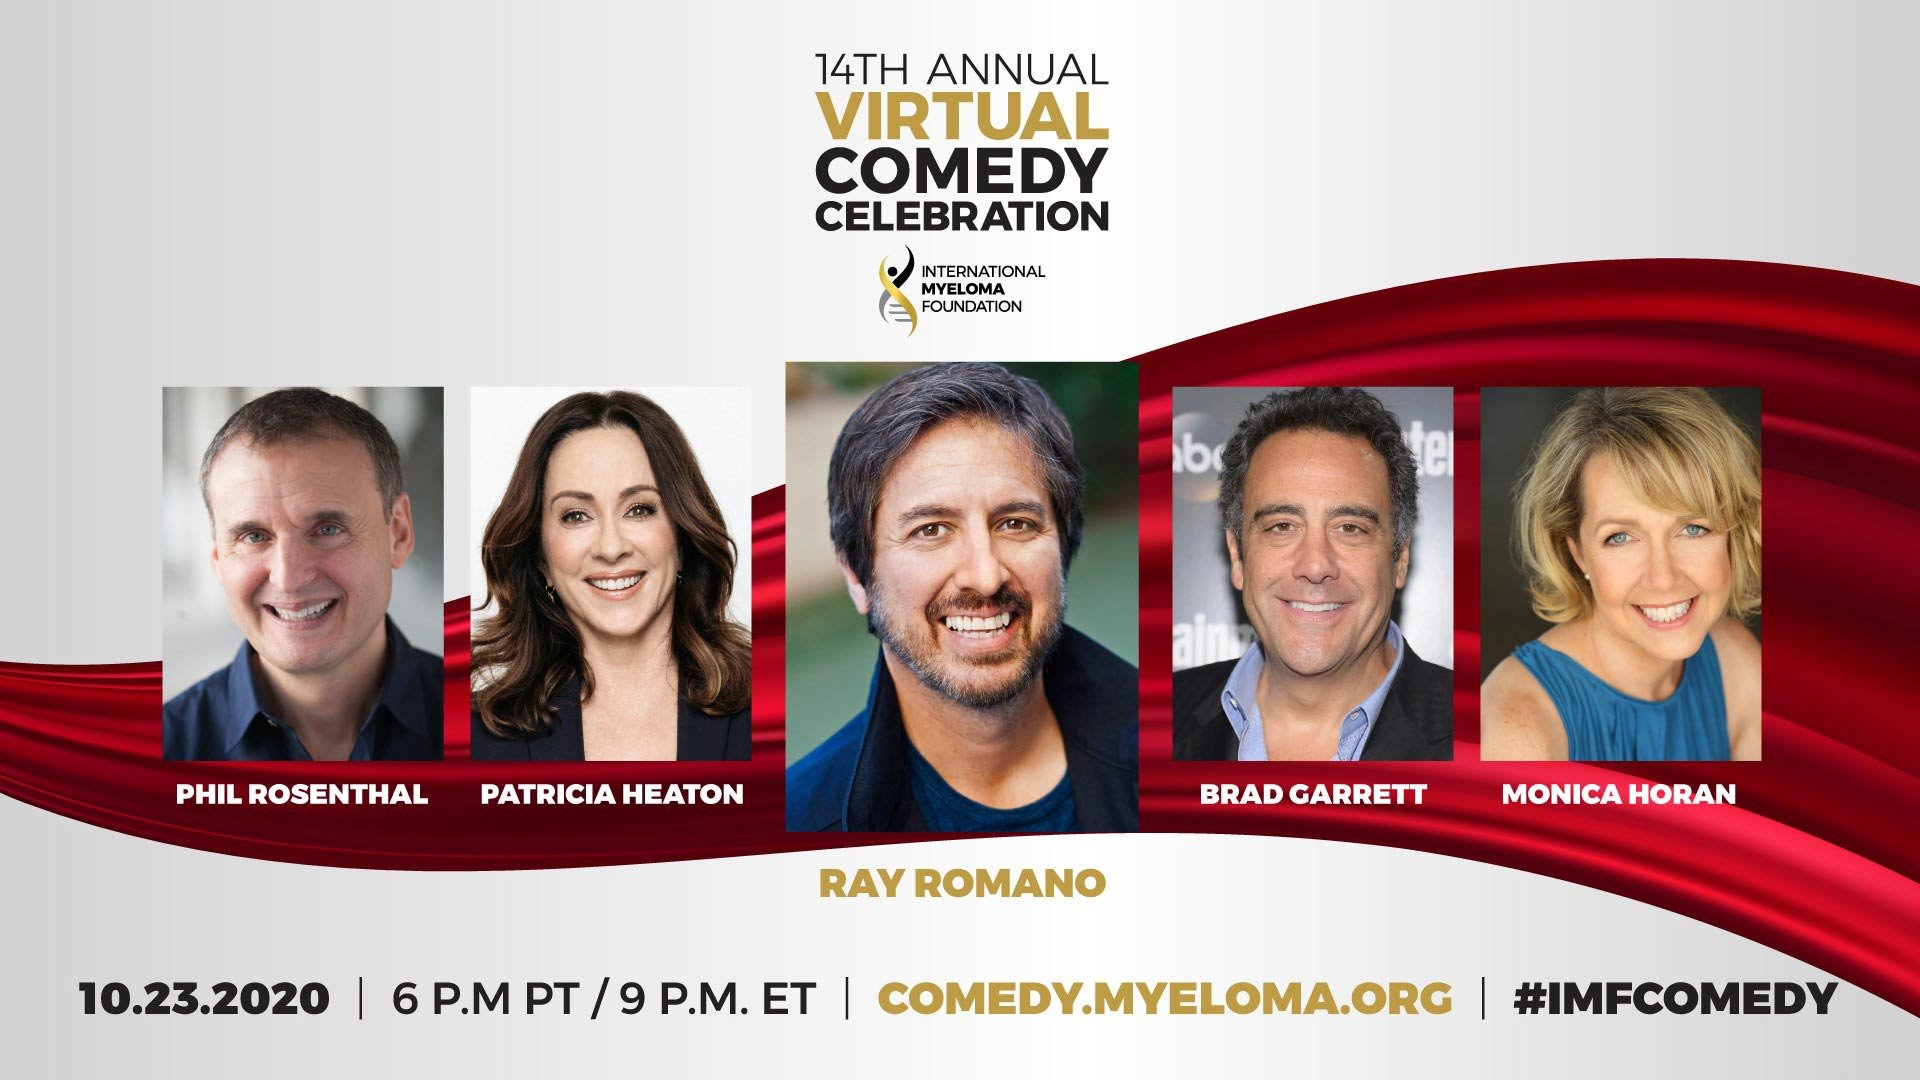 The cast of Everybody Loves Raymond reunites for the international Myeloma Foundation's 14th Comedy Celebration